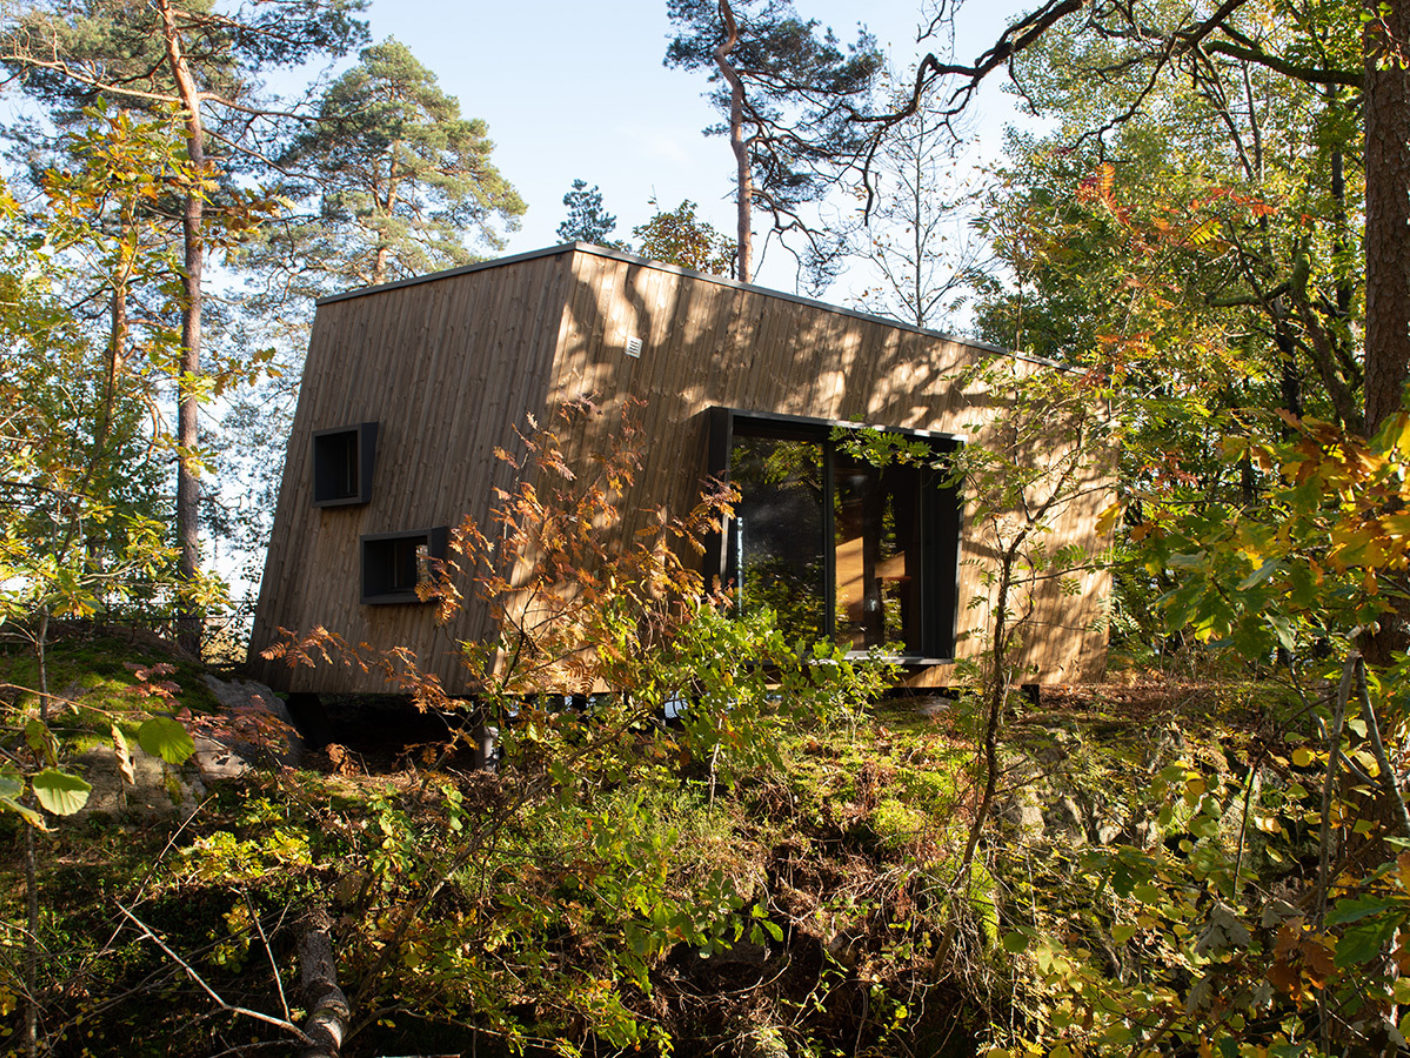 Outdoor Care Retreat in Norway by Snøhetta